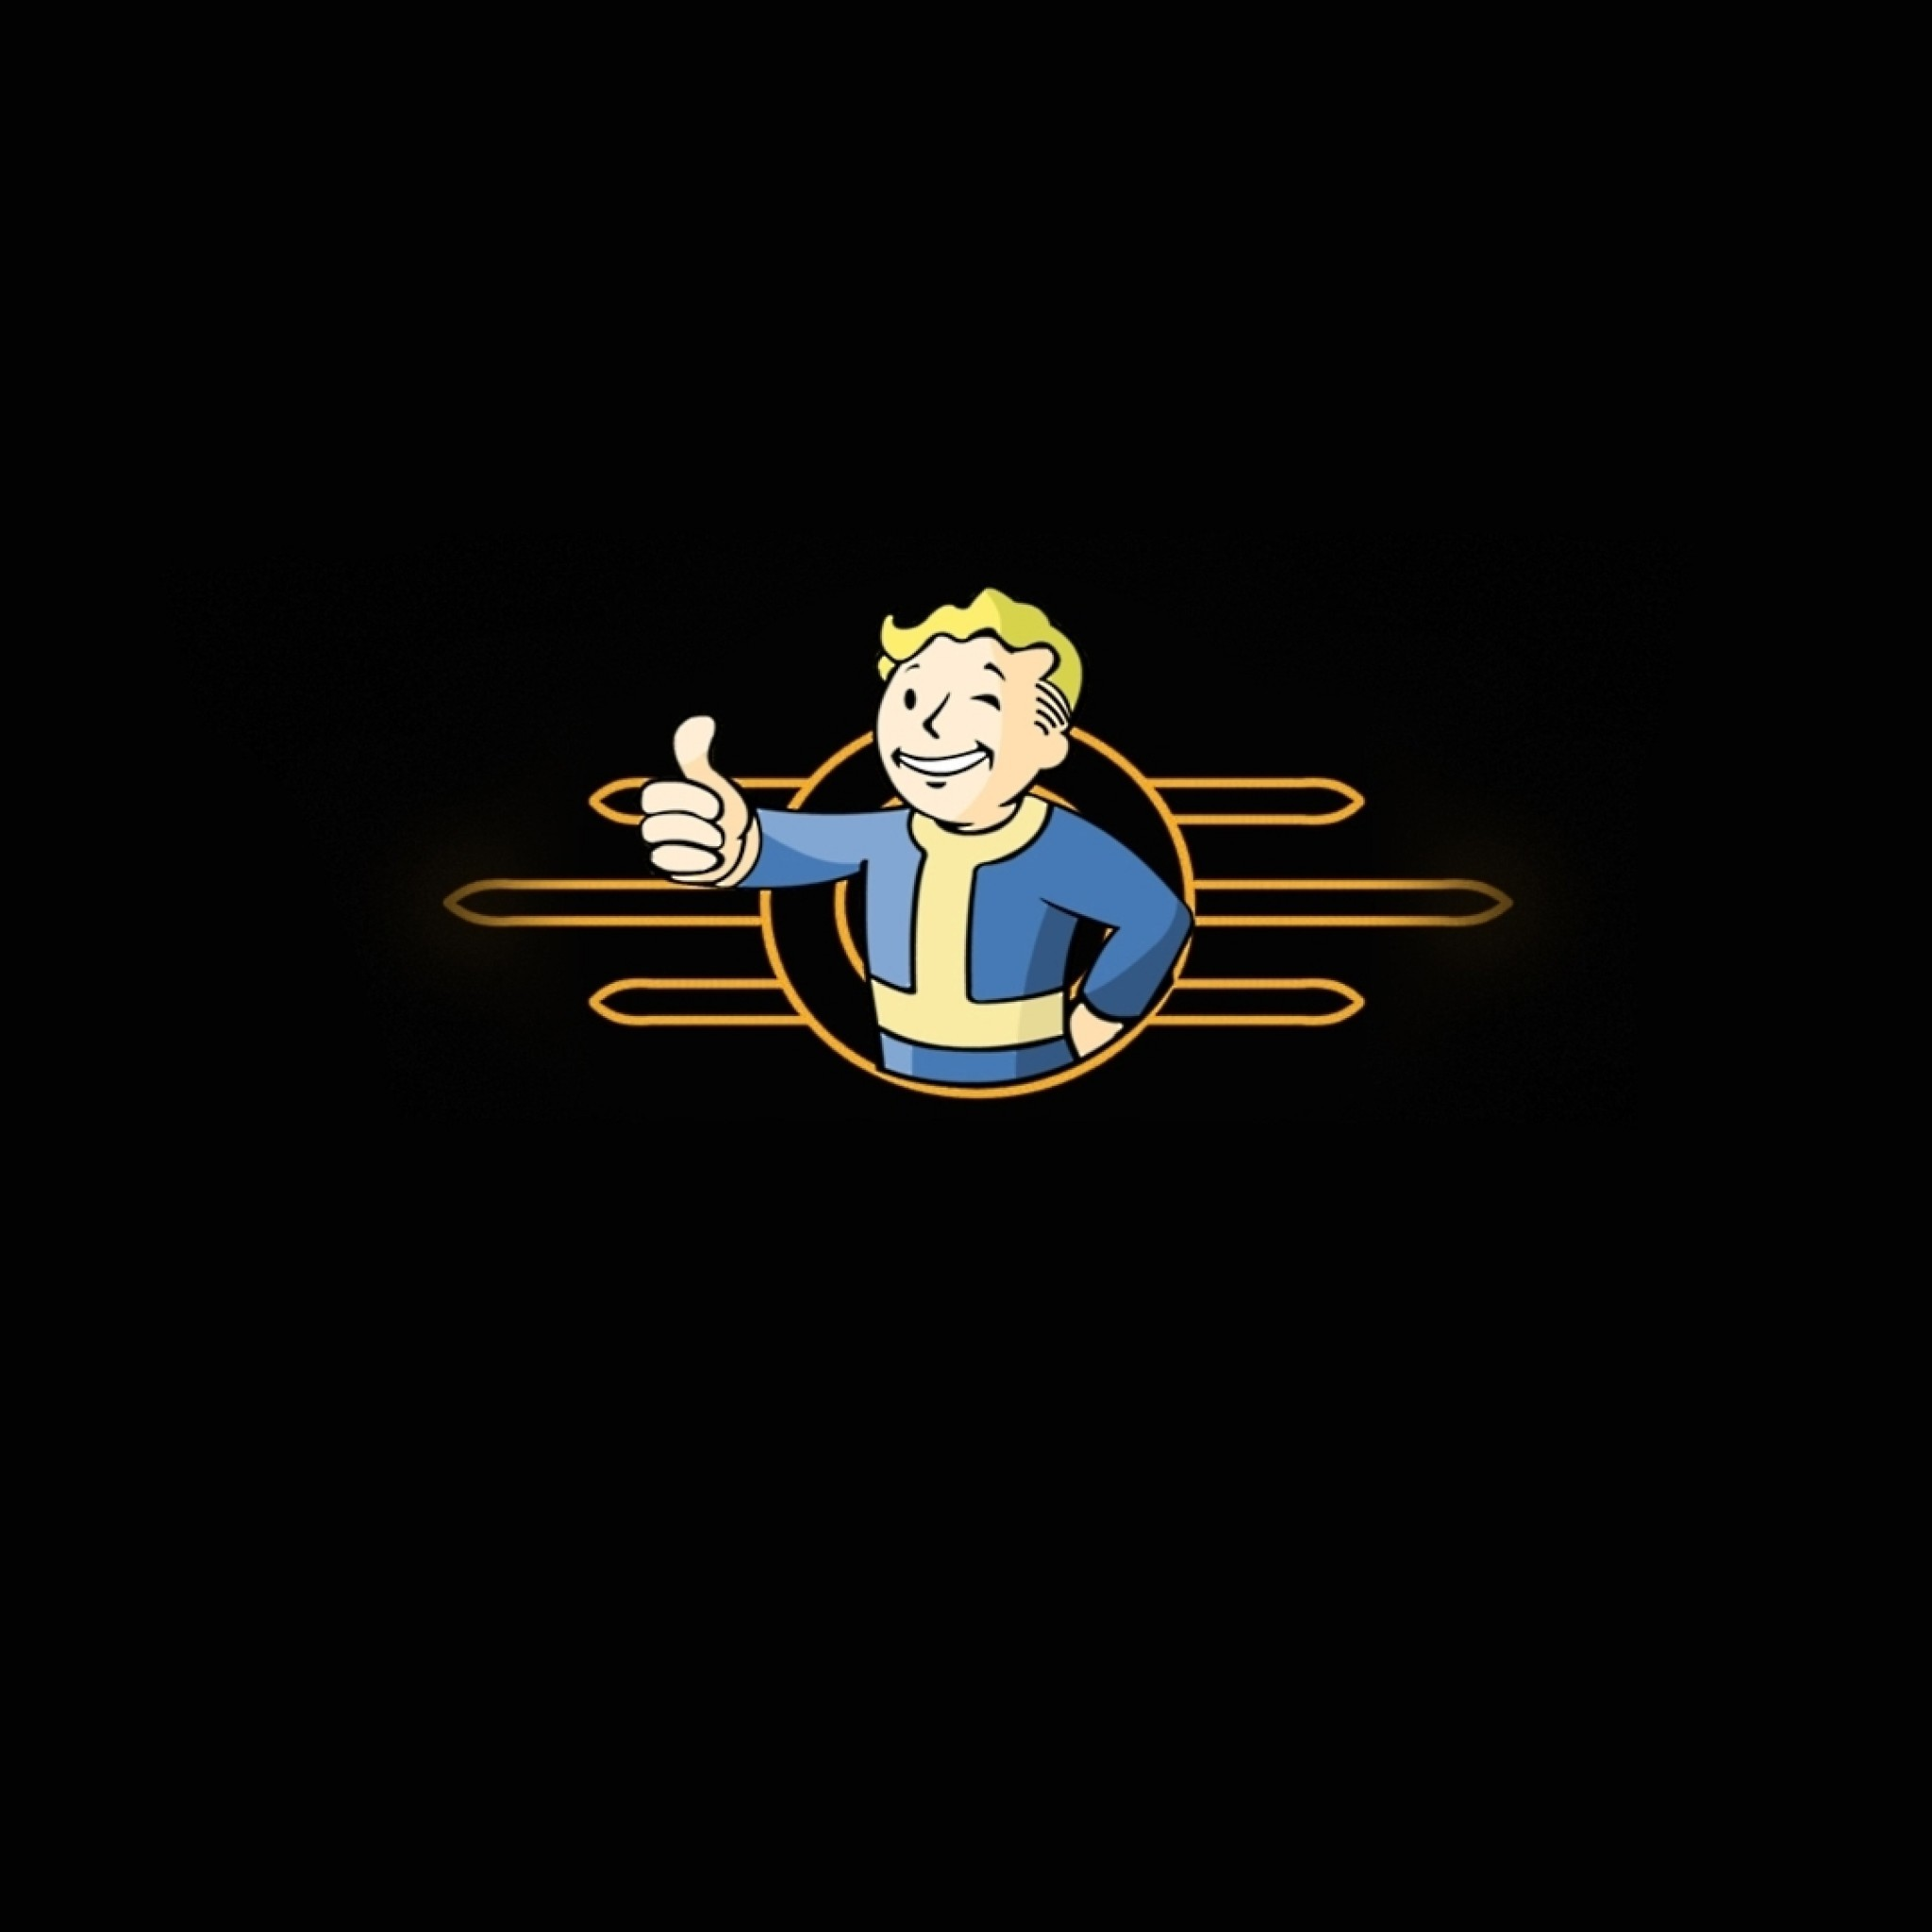 Games : Fallout 3 Vault Boy Wallpapers And Backgrounds 2048x2048Px .